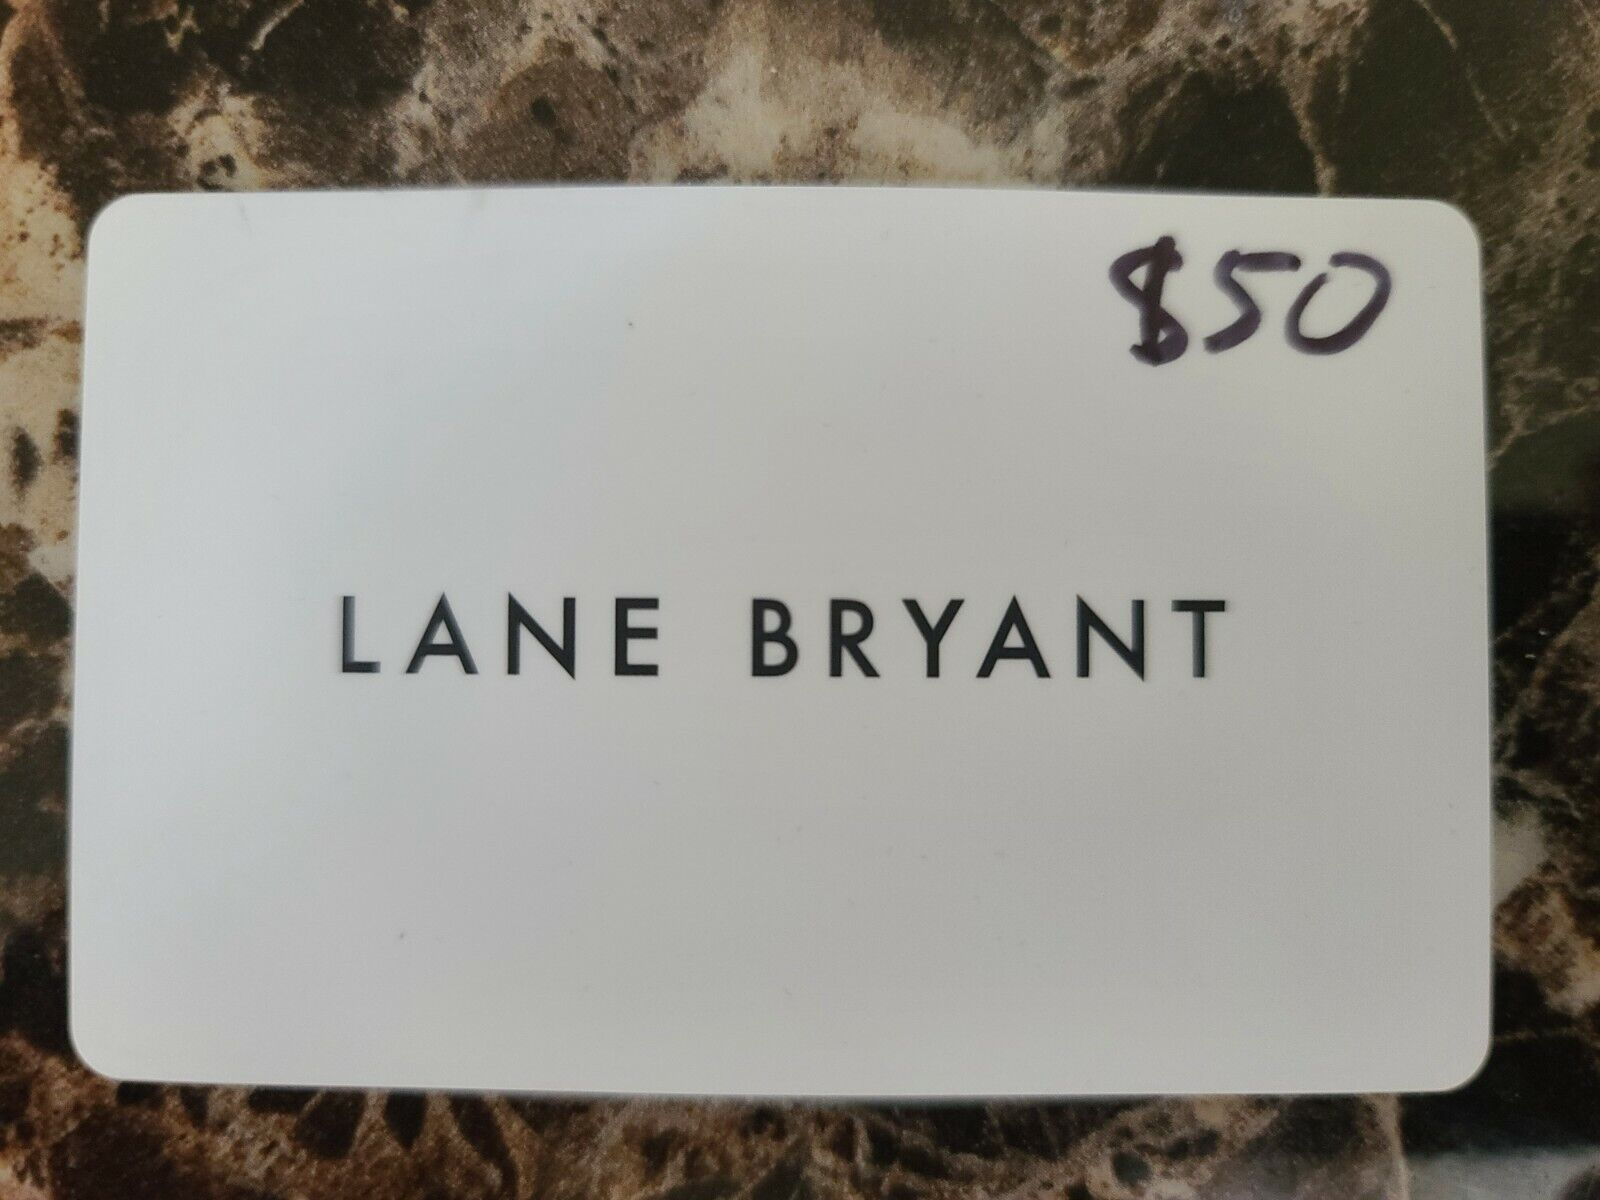 Lane Bryant 50 Gift Card Unused Purchased From Amazon - $31.07